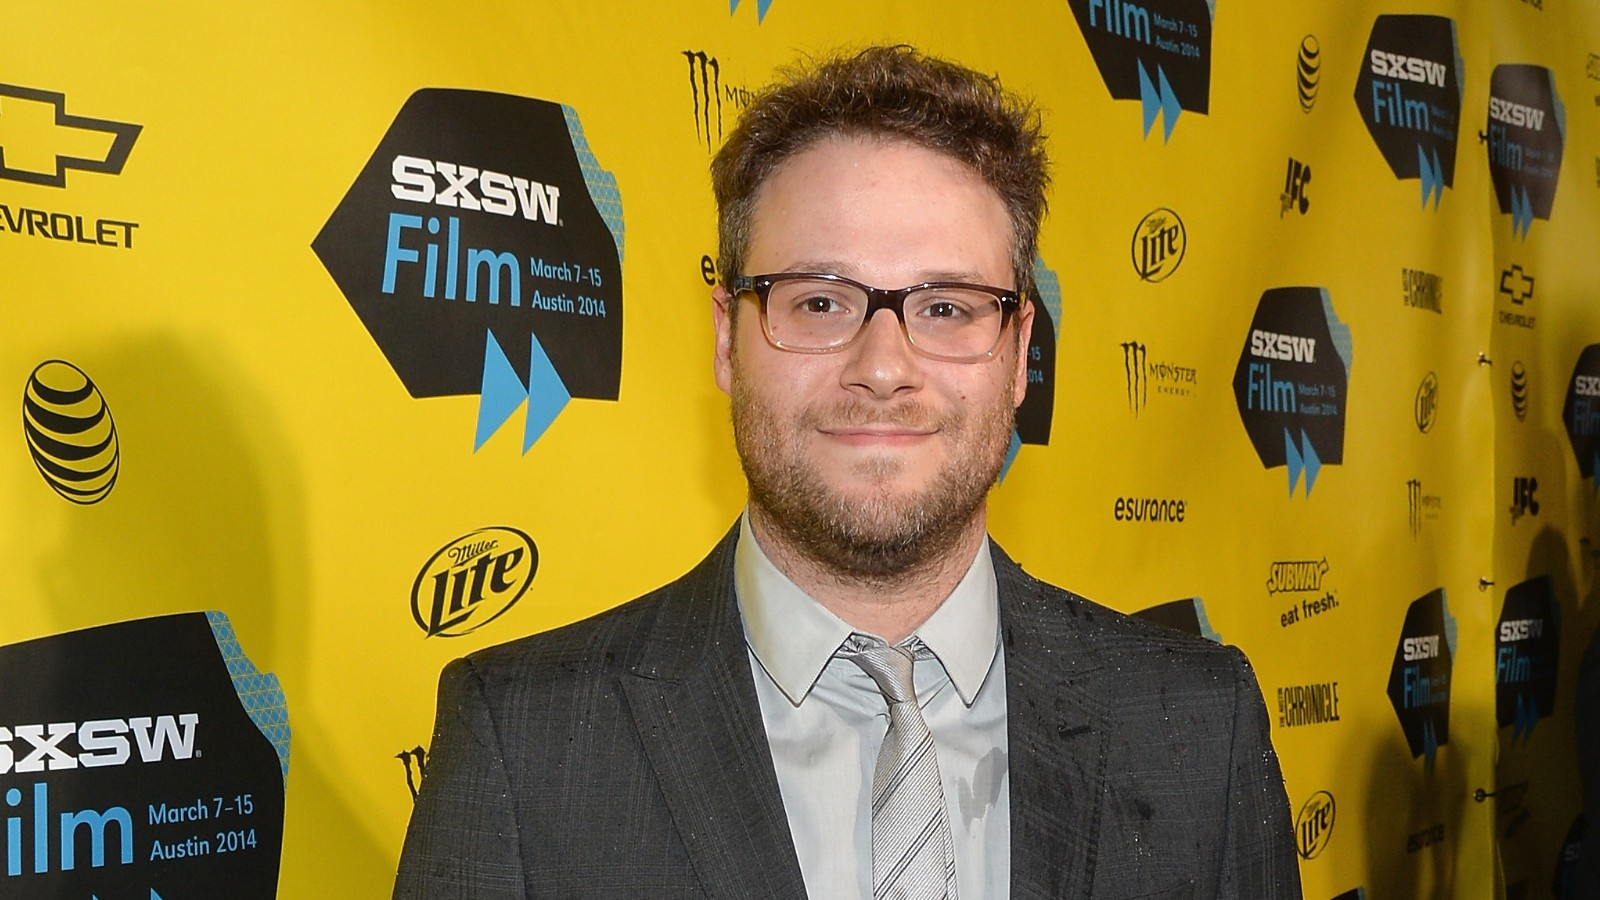 Seth Rogen reveals he refused a photo with Paul Ryan: 'No way, man'